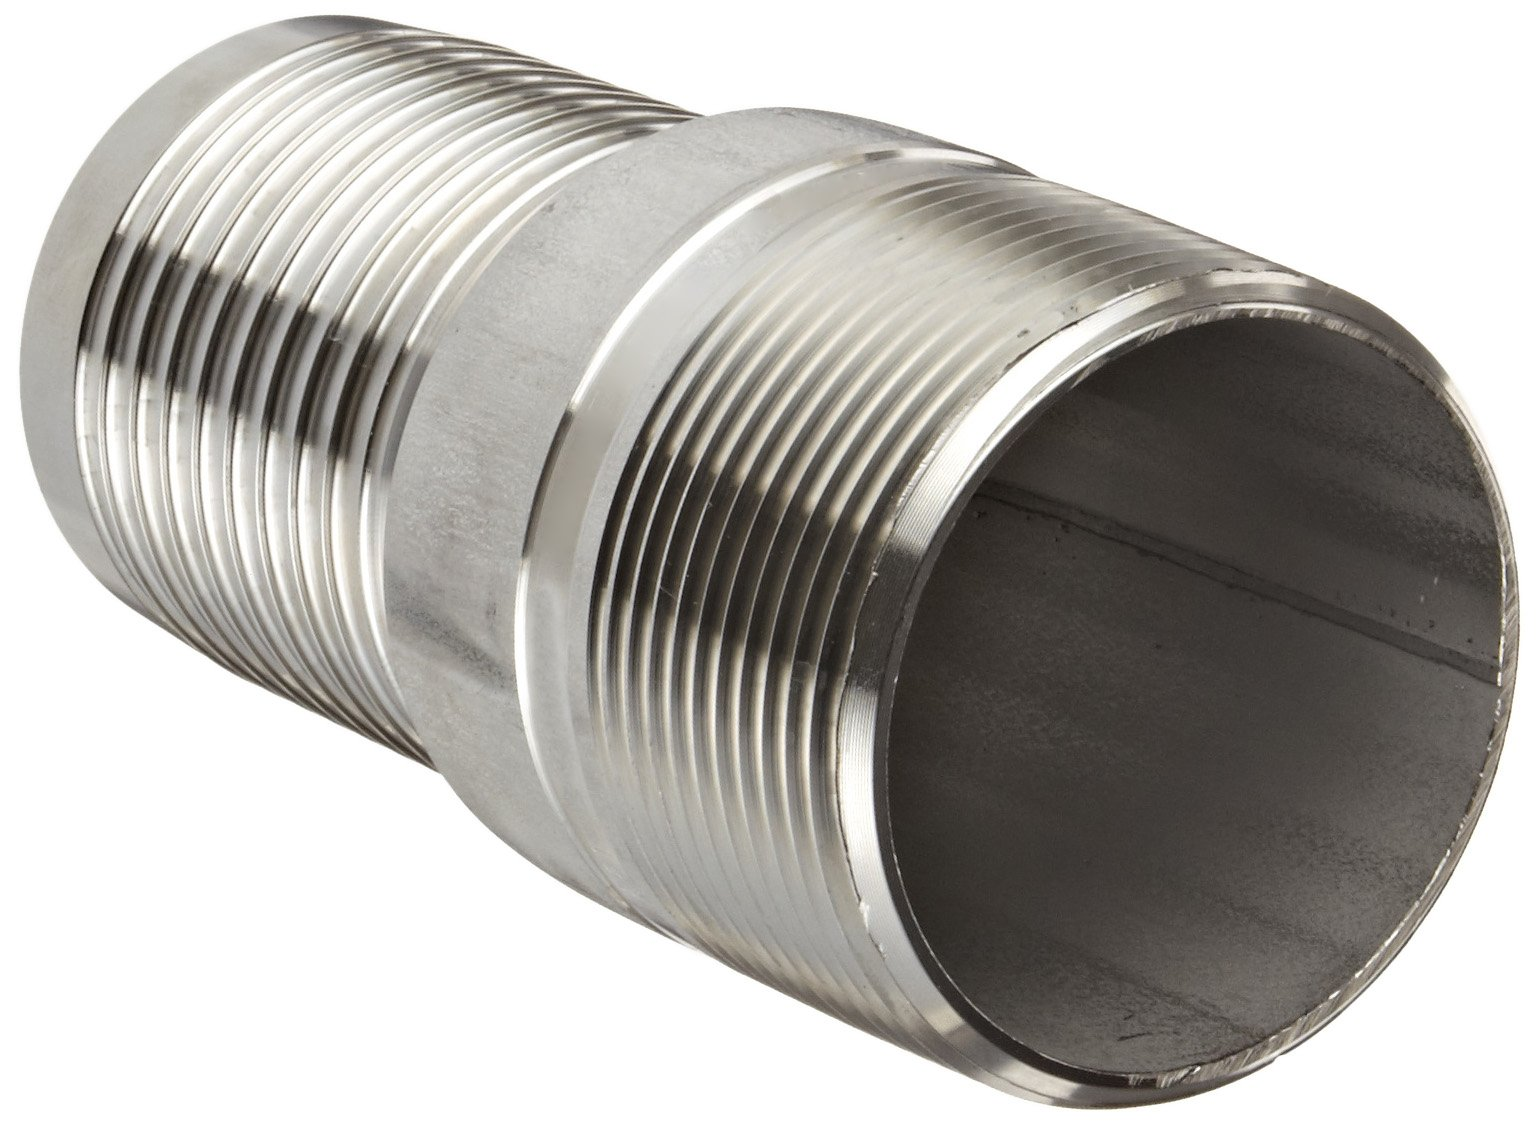 Dixon RST30 Stainless Steel 316 Hose Fitting, King Combination Nipple Threaded End with No Knurl, 2-1/2'' NPT Male x 2-1/2'' Hose ID Barbed